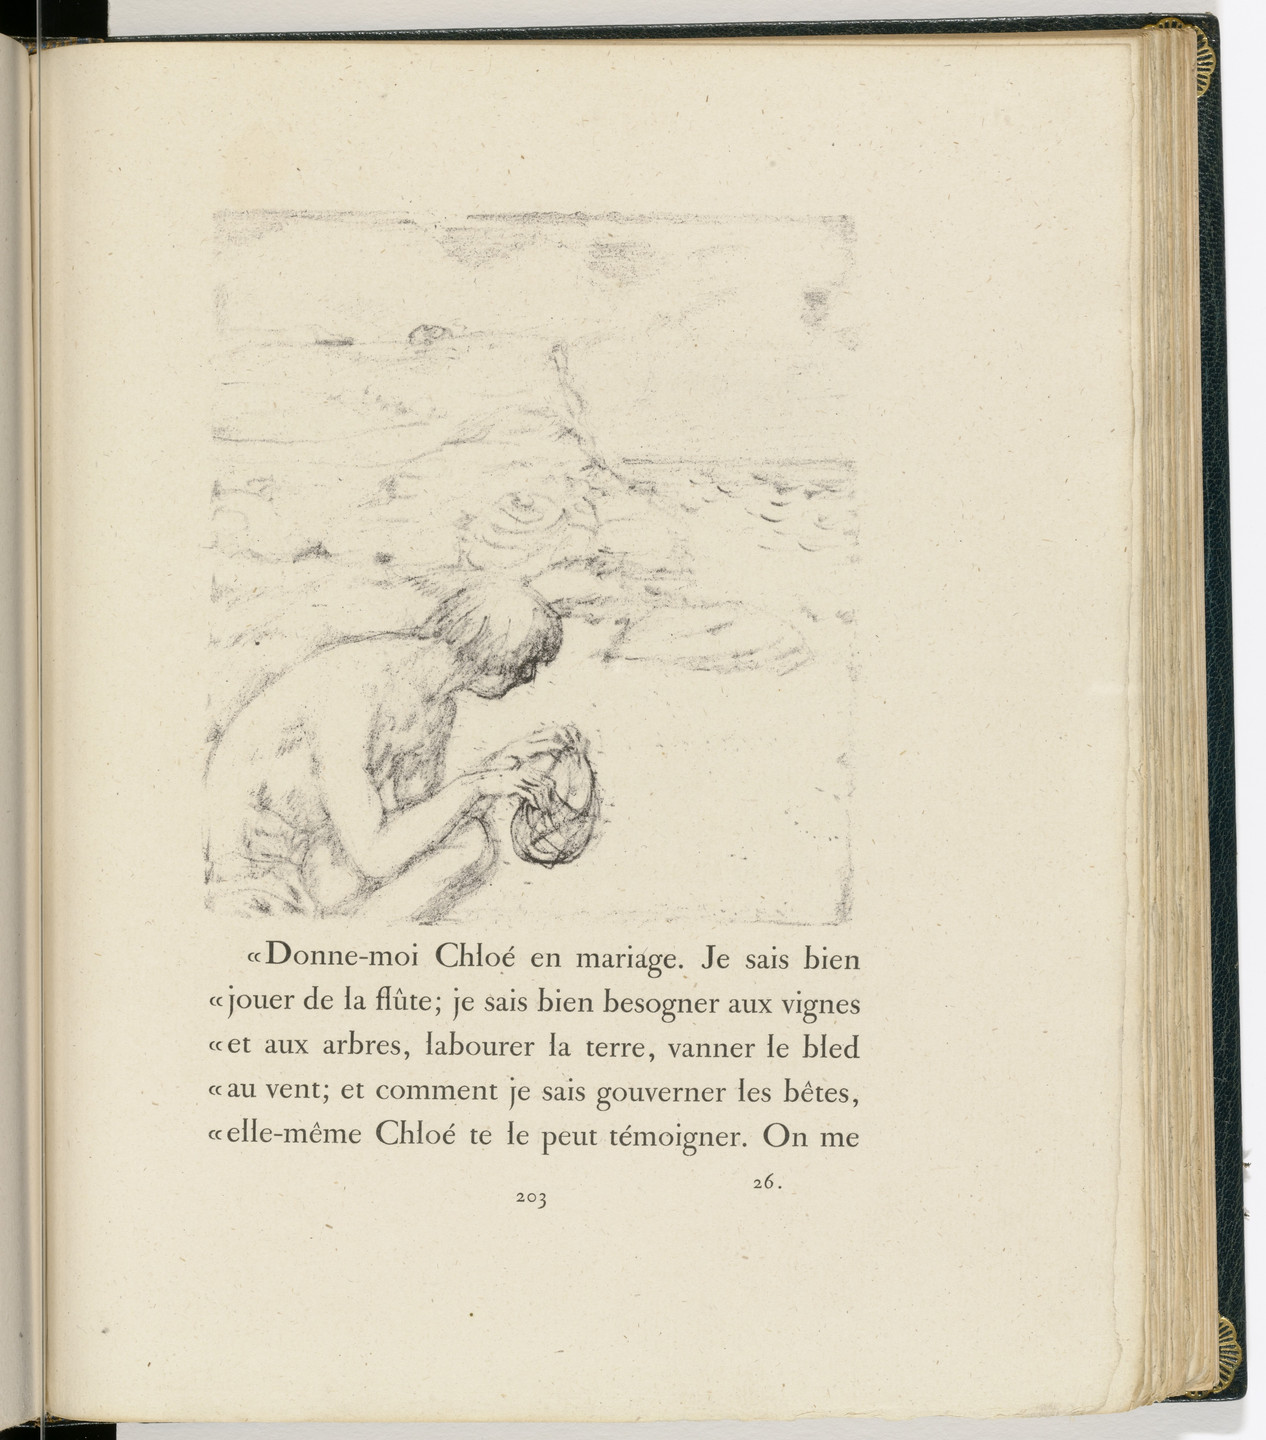 Pierre Bonnard. In-text plate (page 203) from Daphnis et Chloé. 1902